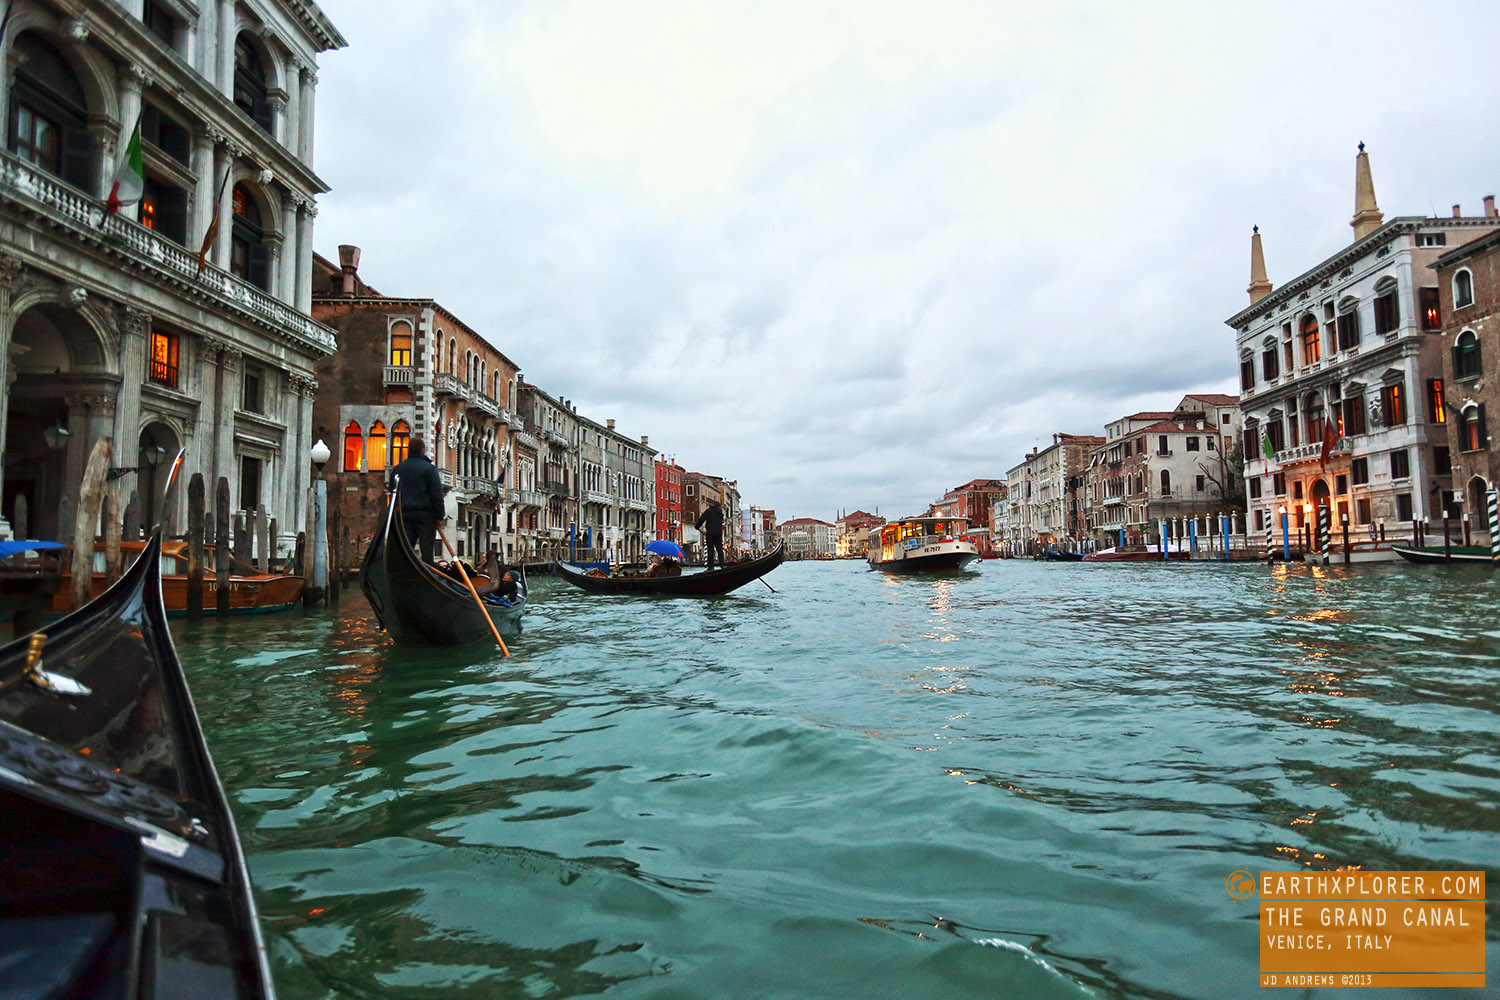 The Grand Canal  is one of the major water-traffic corridors in the city of Venice.